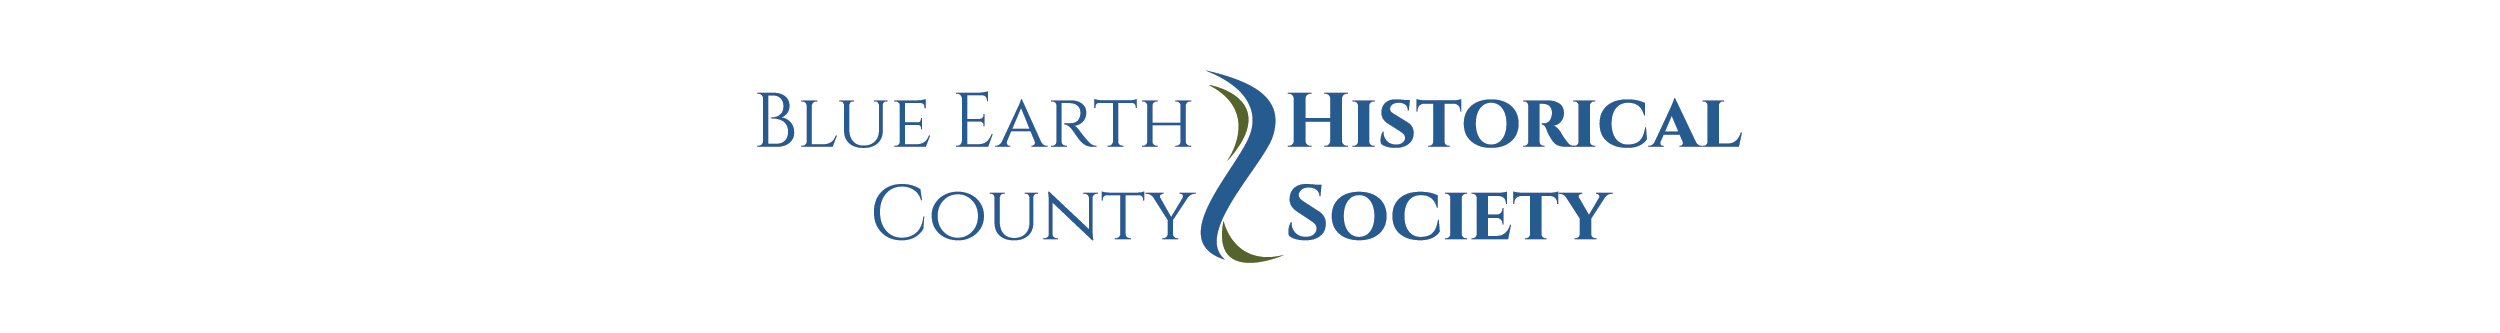 Blue Earth County Historical Society Logo